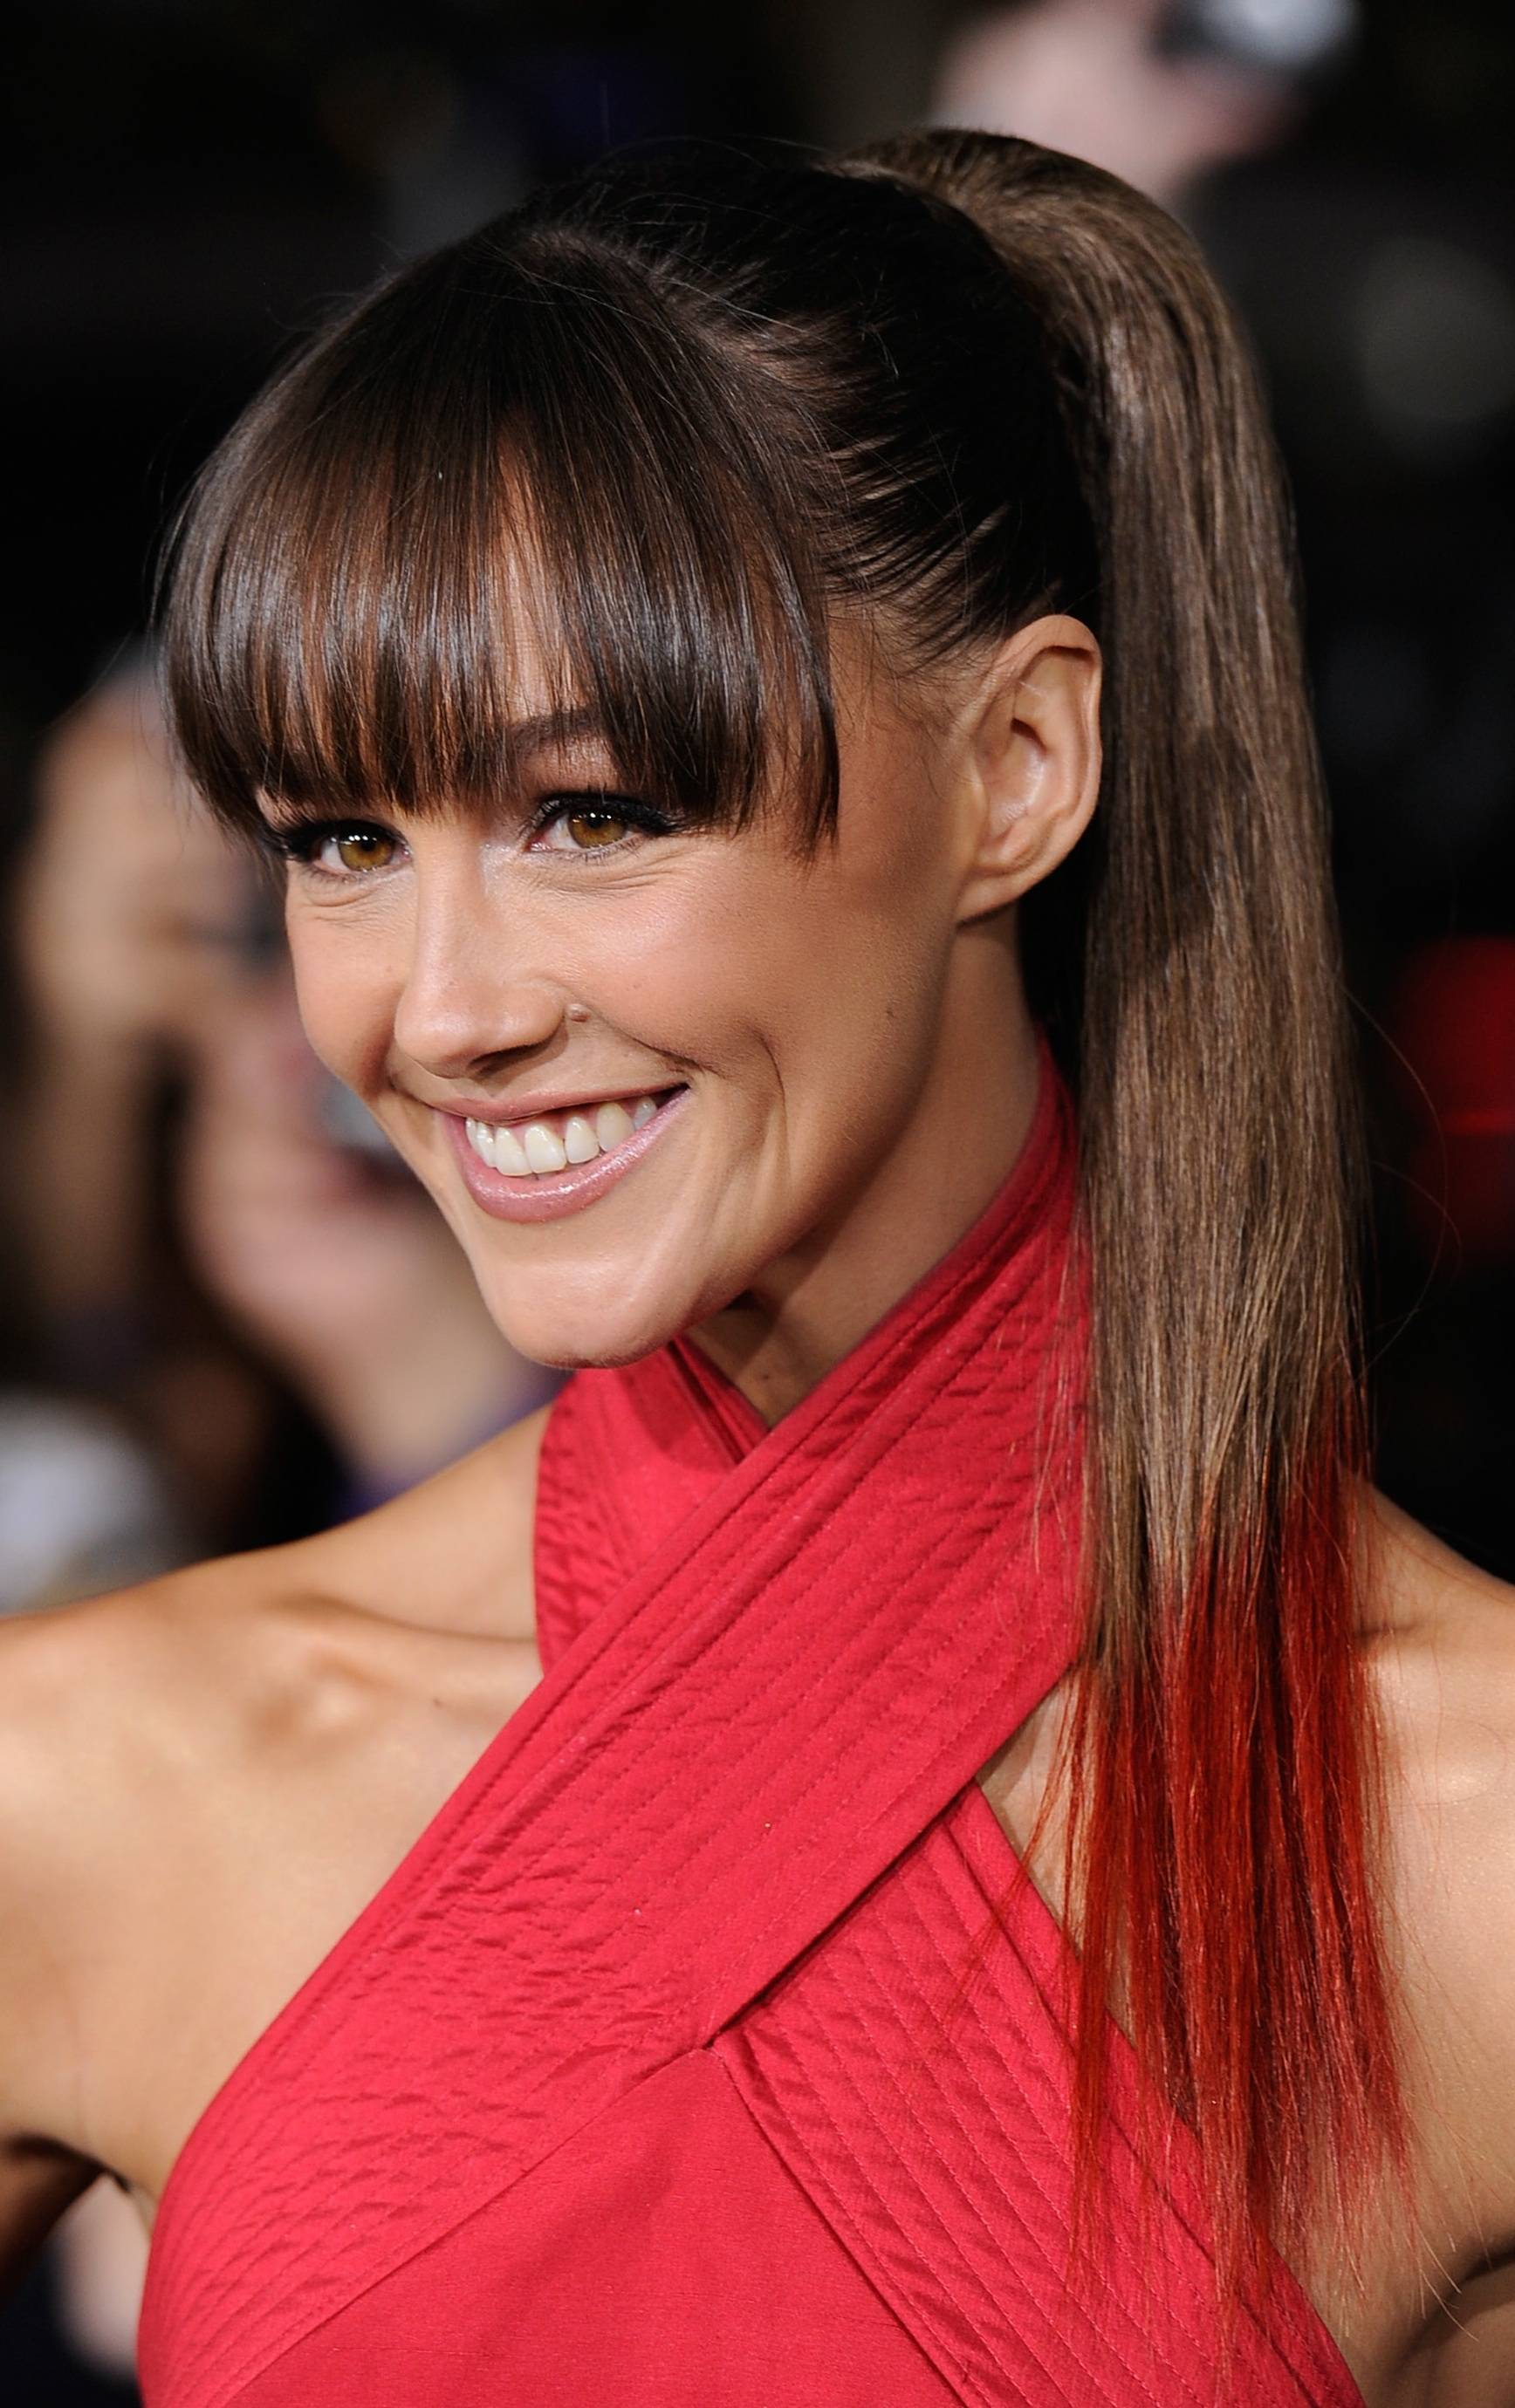 color and style hair sharni vinson photo 37 of 49 pics wallpaper photo 2760